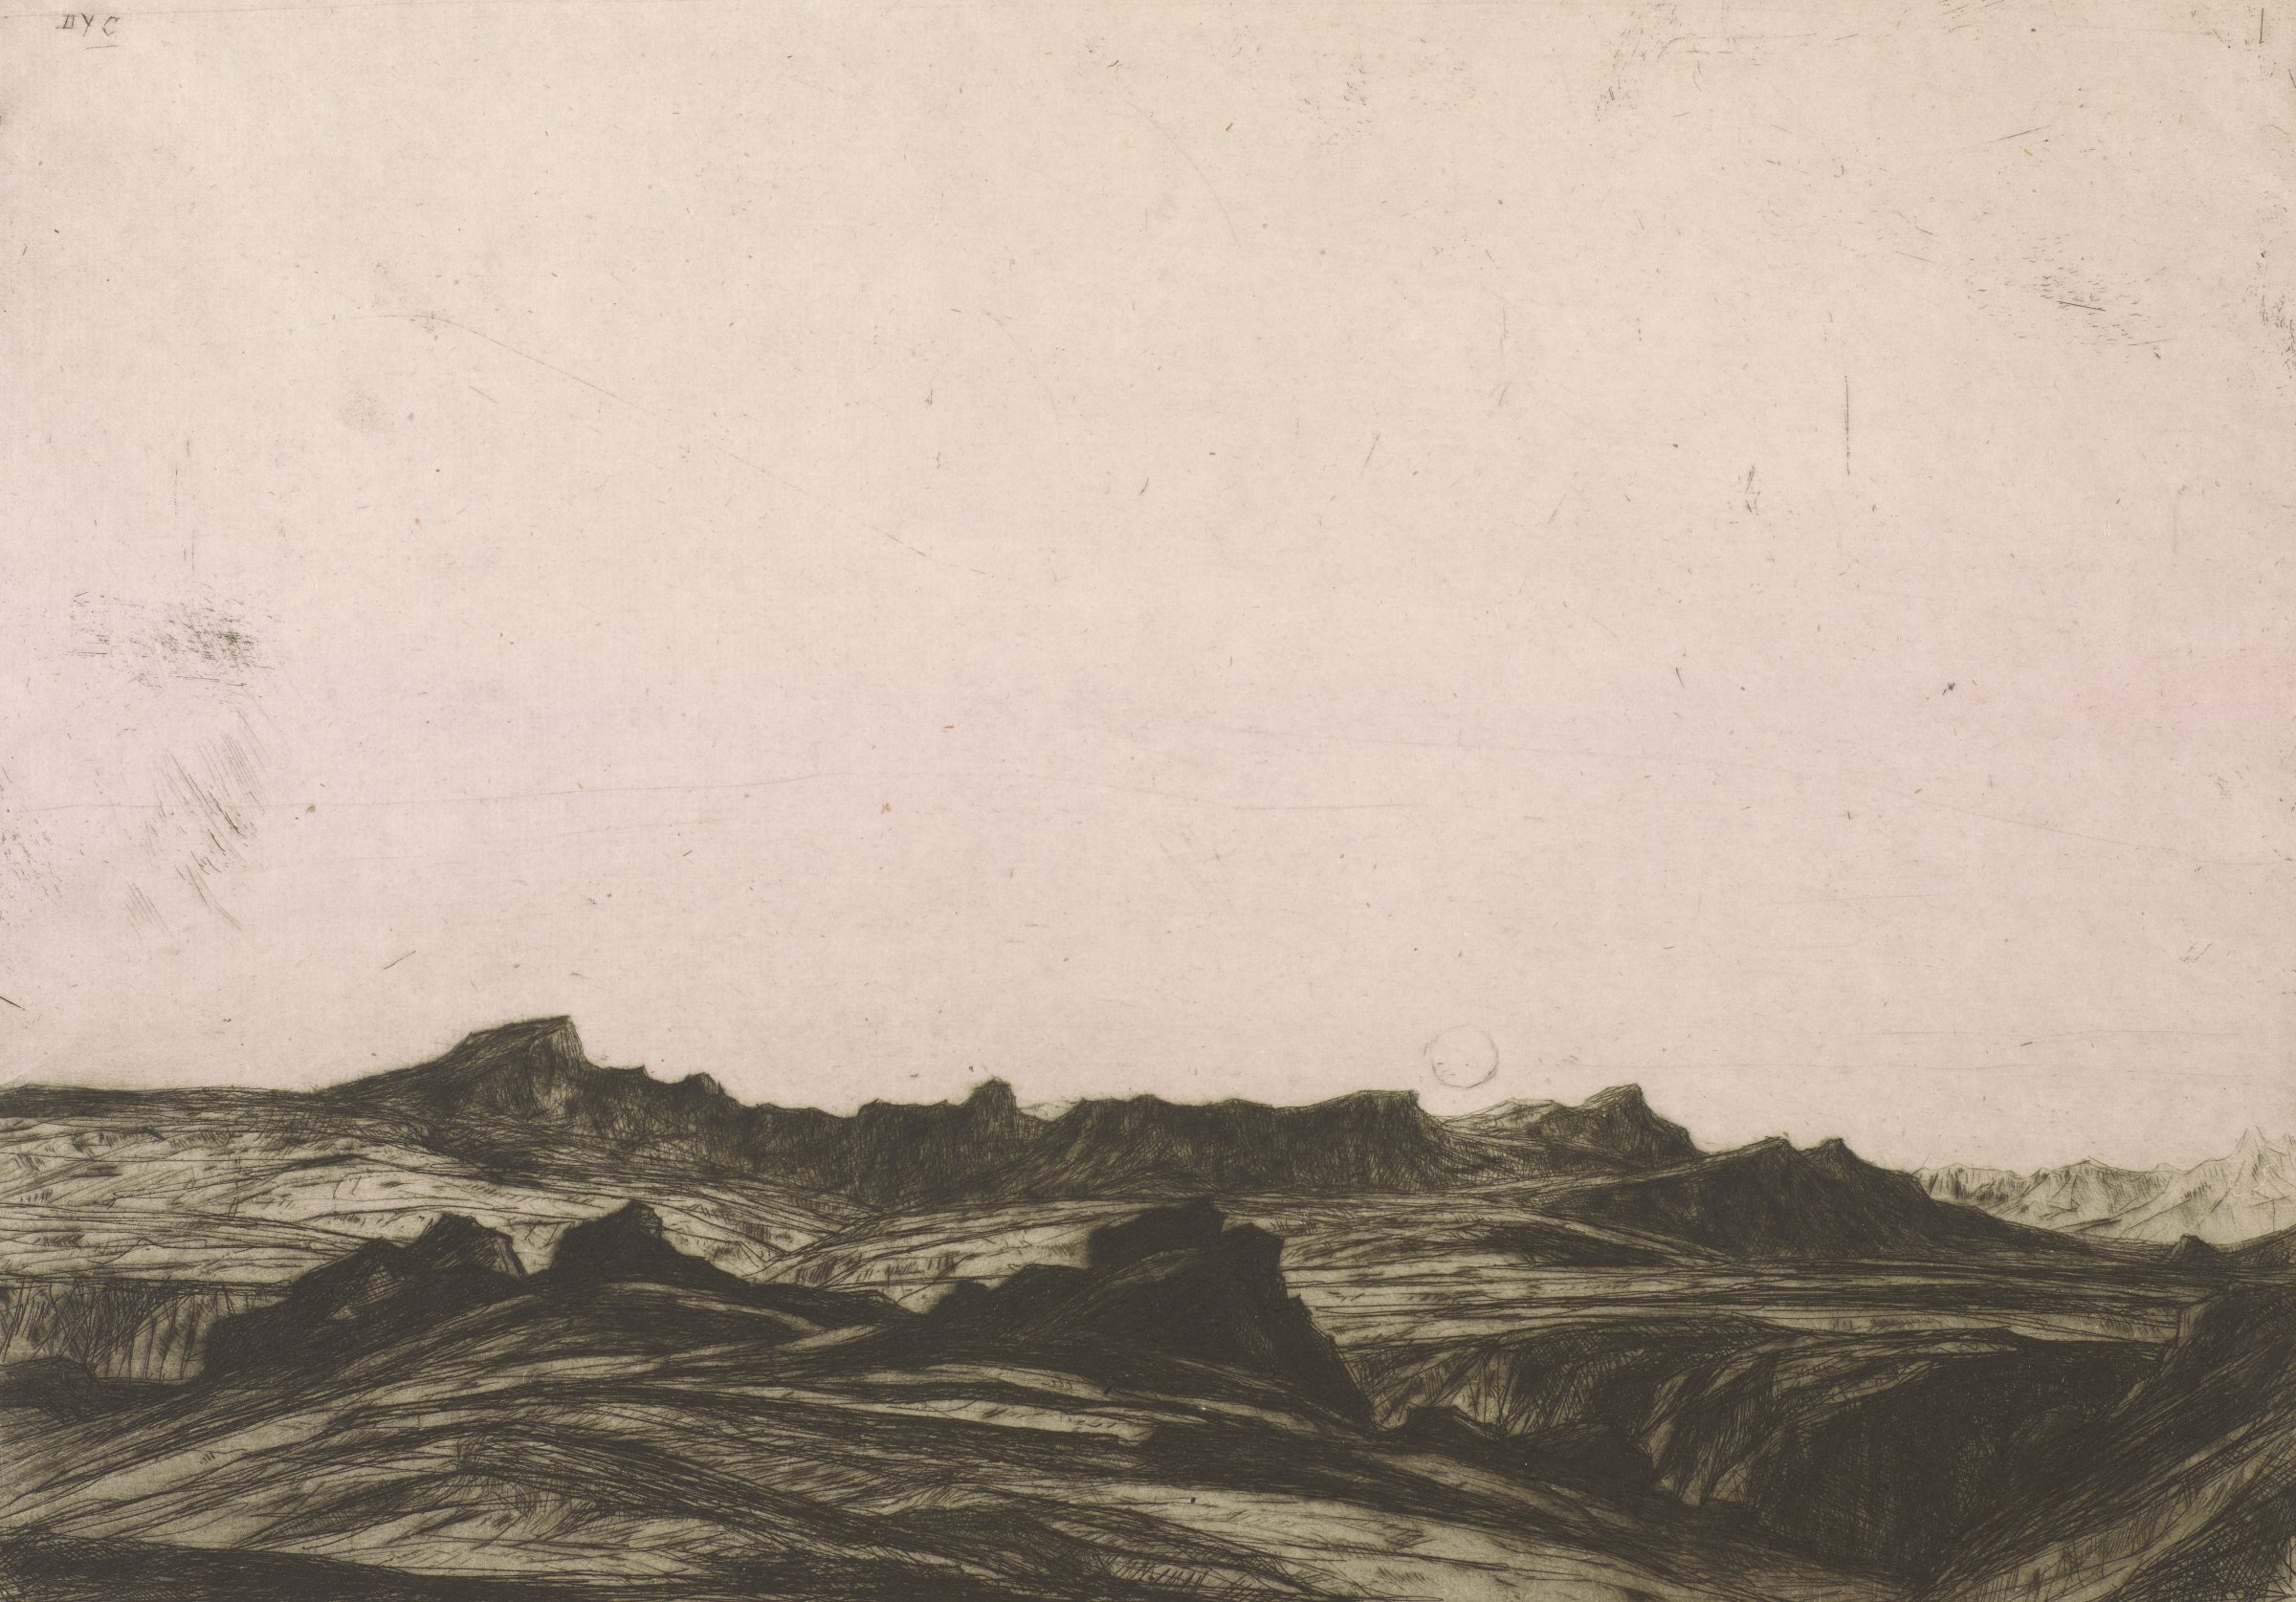 Image of a low horizon with a landscape of jagged mountains. The sun or moon is seen rising from behind the mountains.